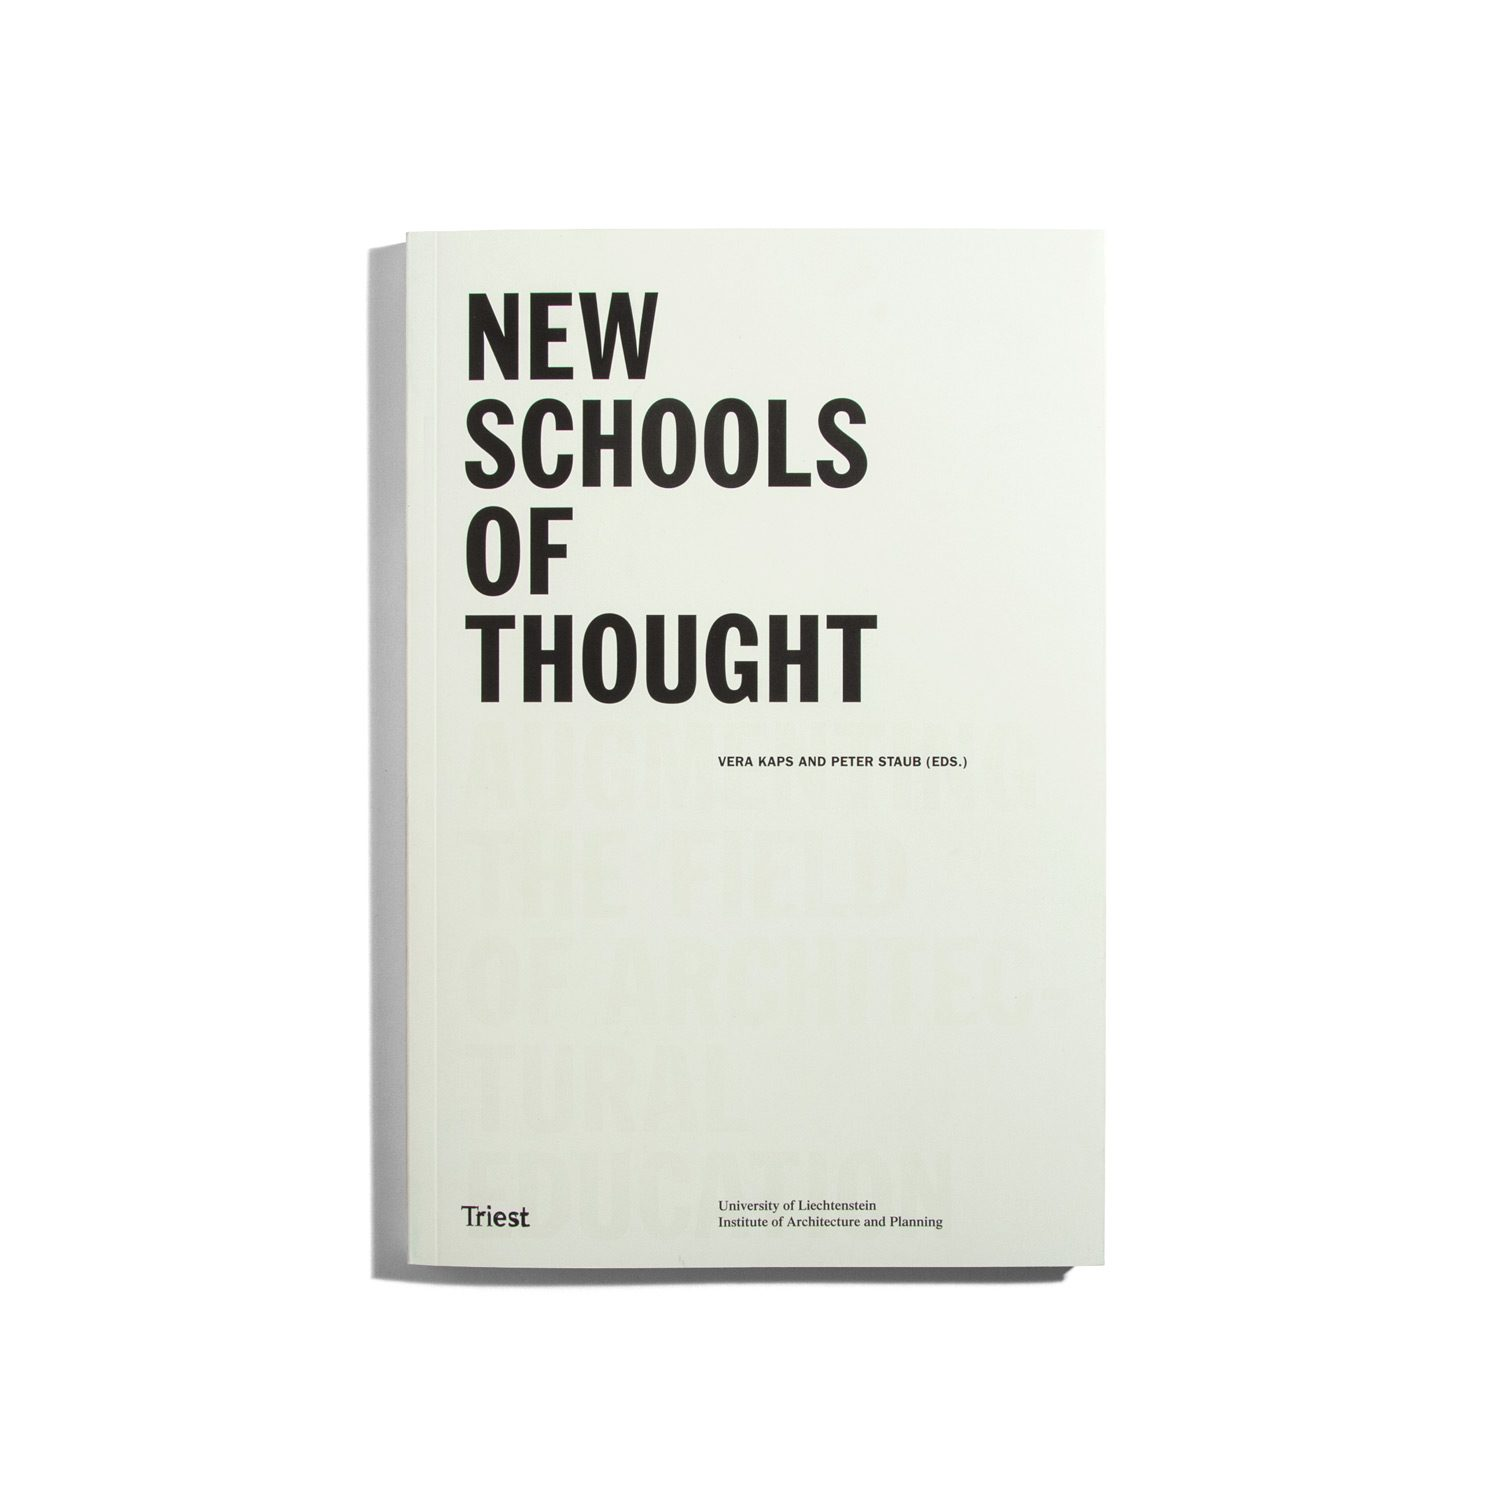 New Schools of Thought